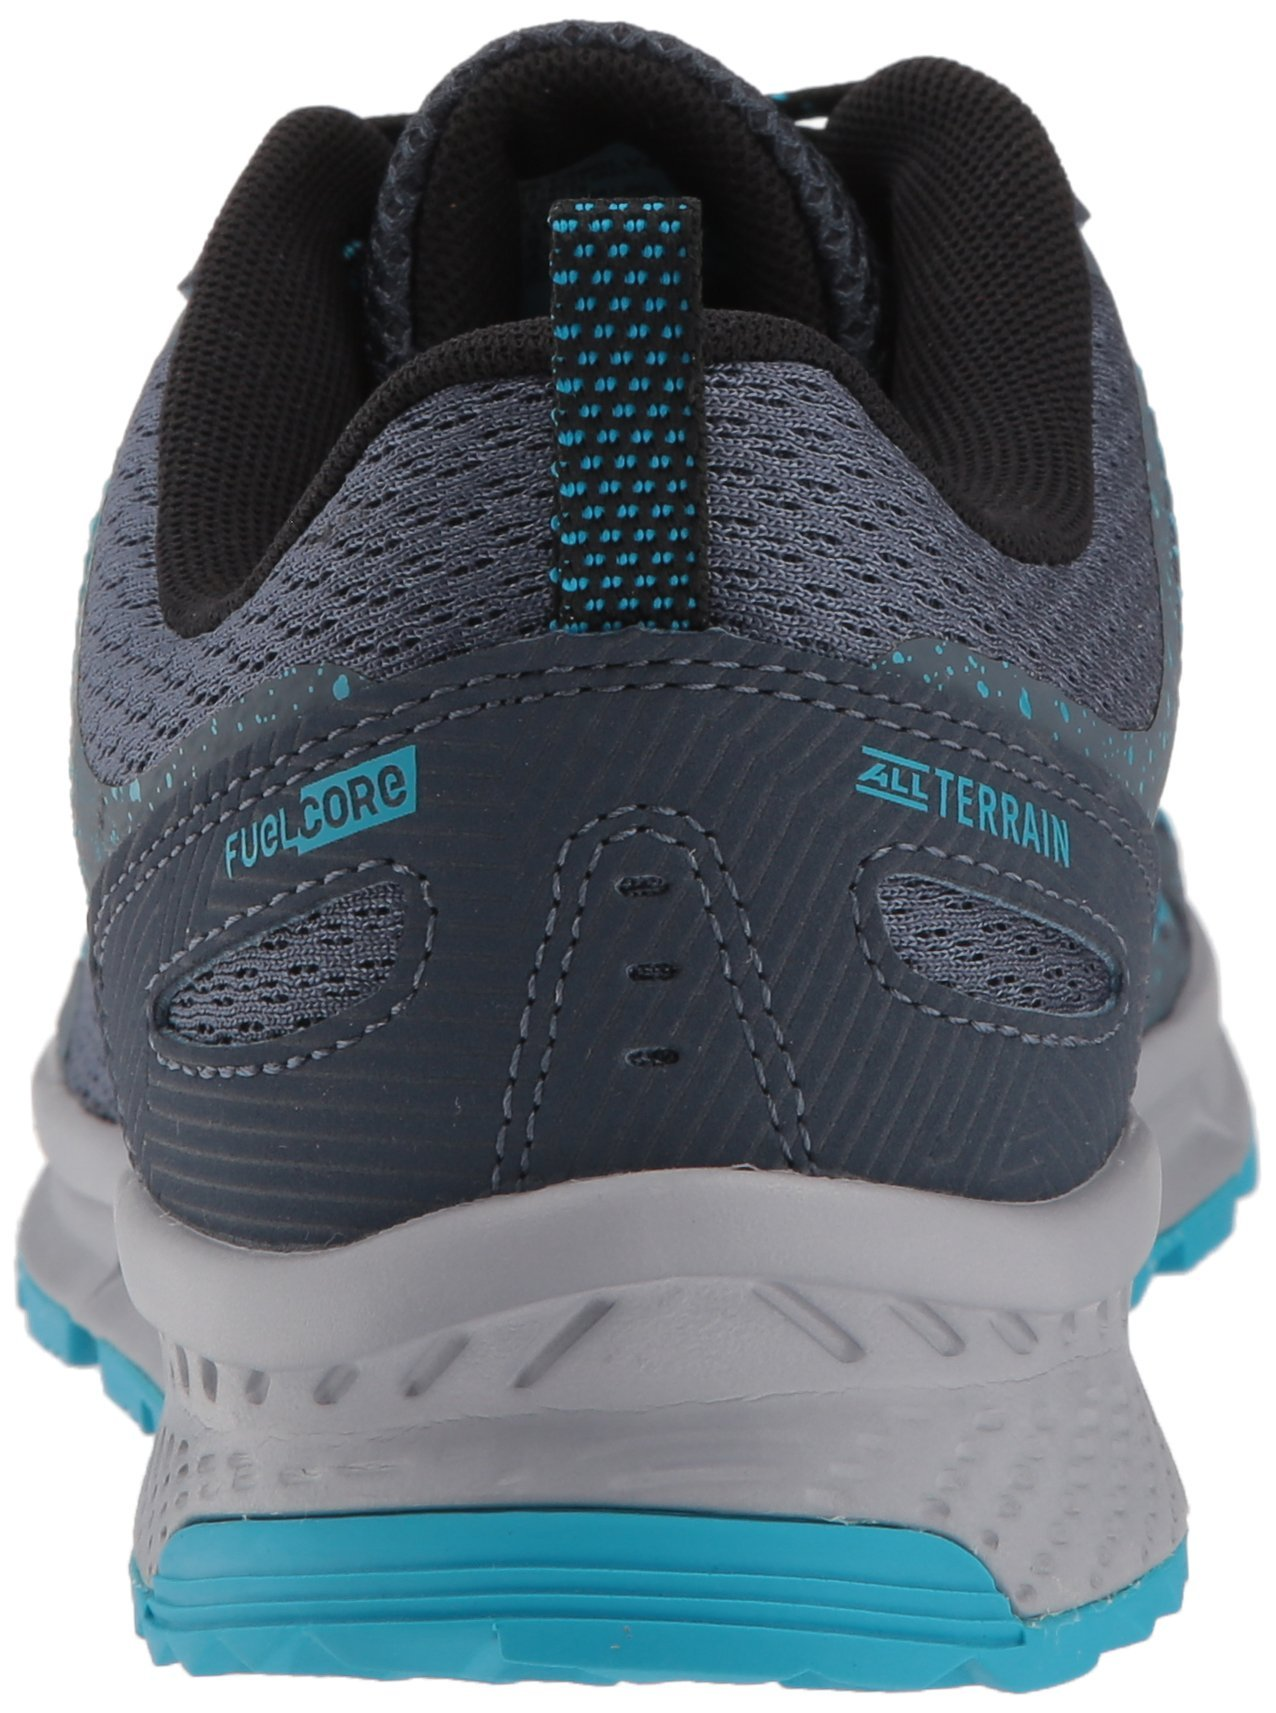 New Balance Women's 590v4 FuelCore Trail Running Shoe Dark Grey 6 D US by New Balance (Image #2)